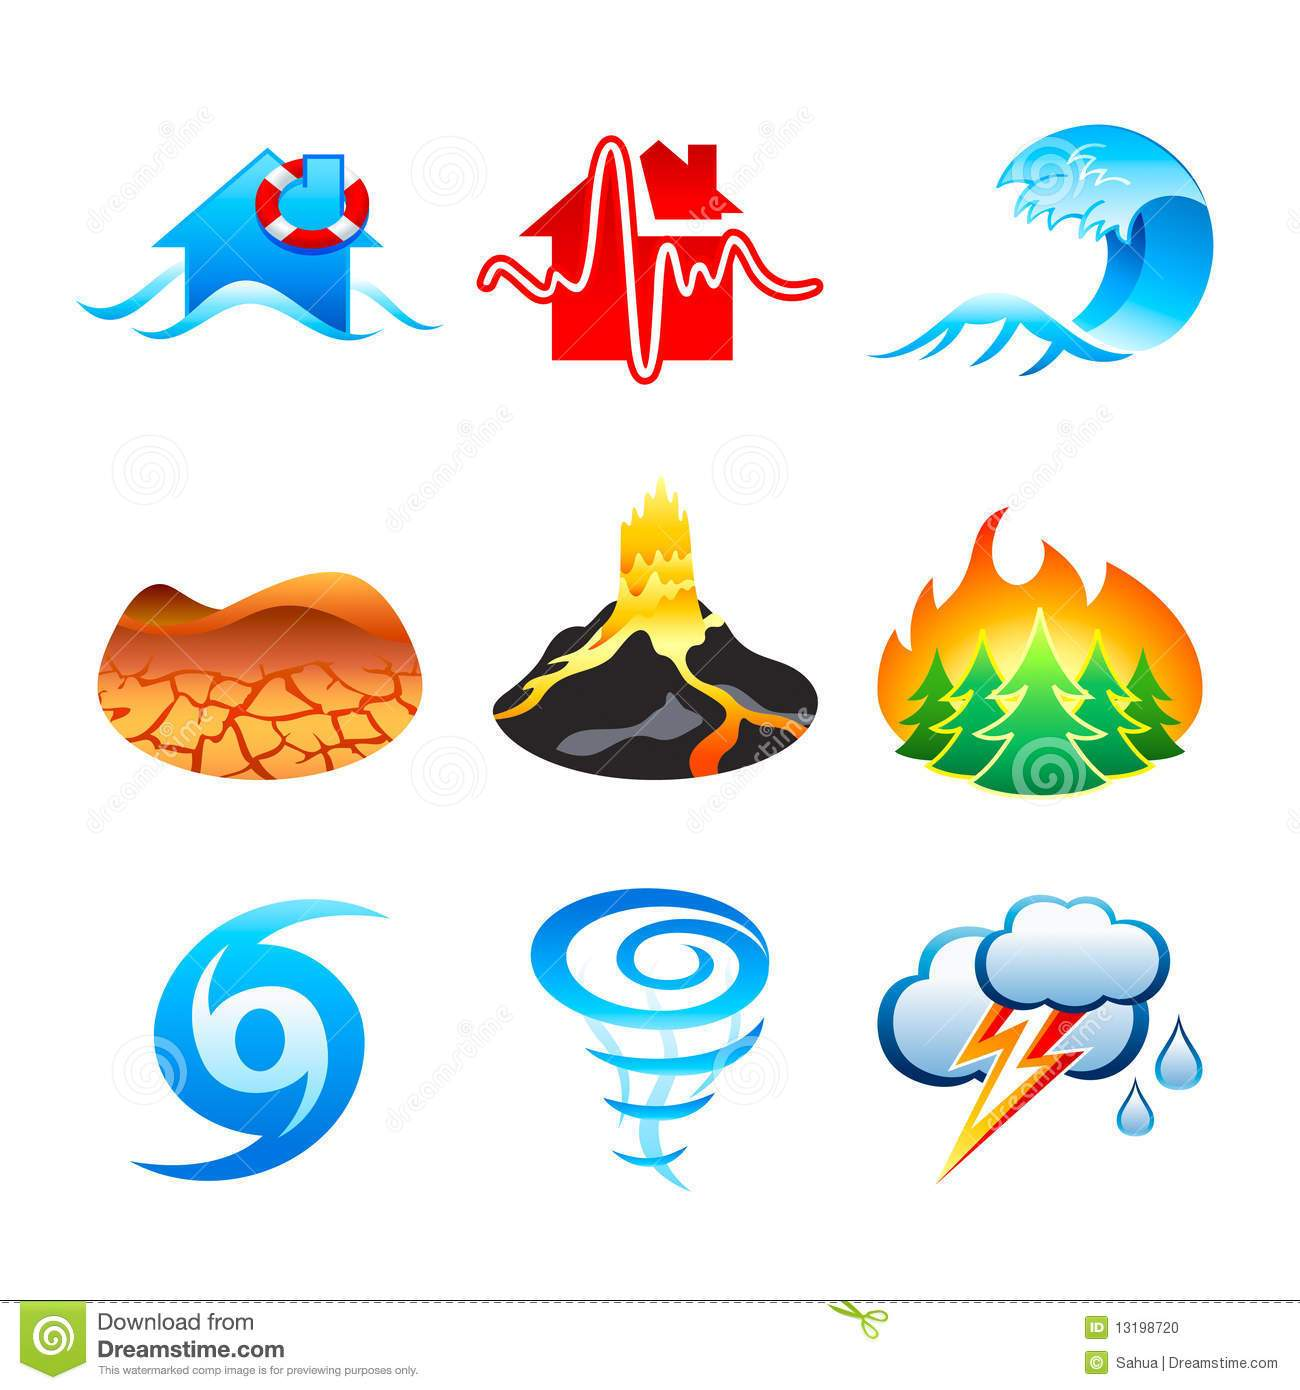 Natural disasters clipart 1 » Clipart Portal.